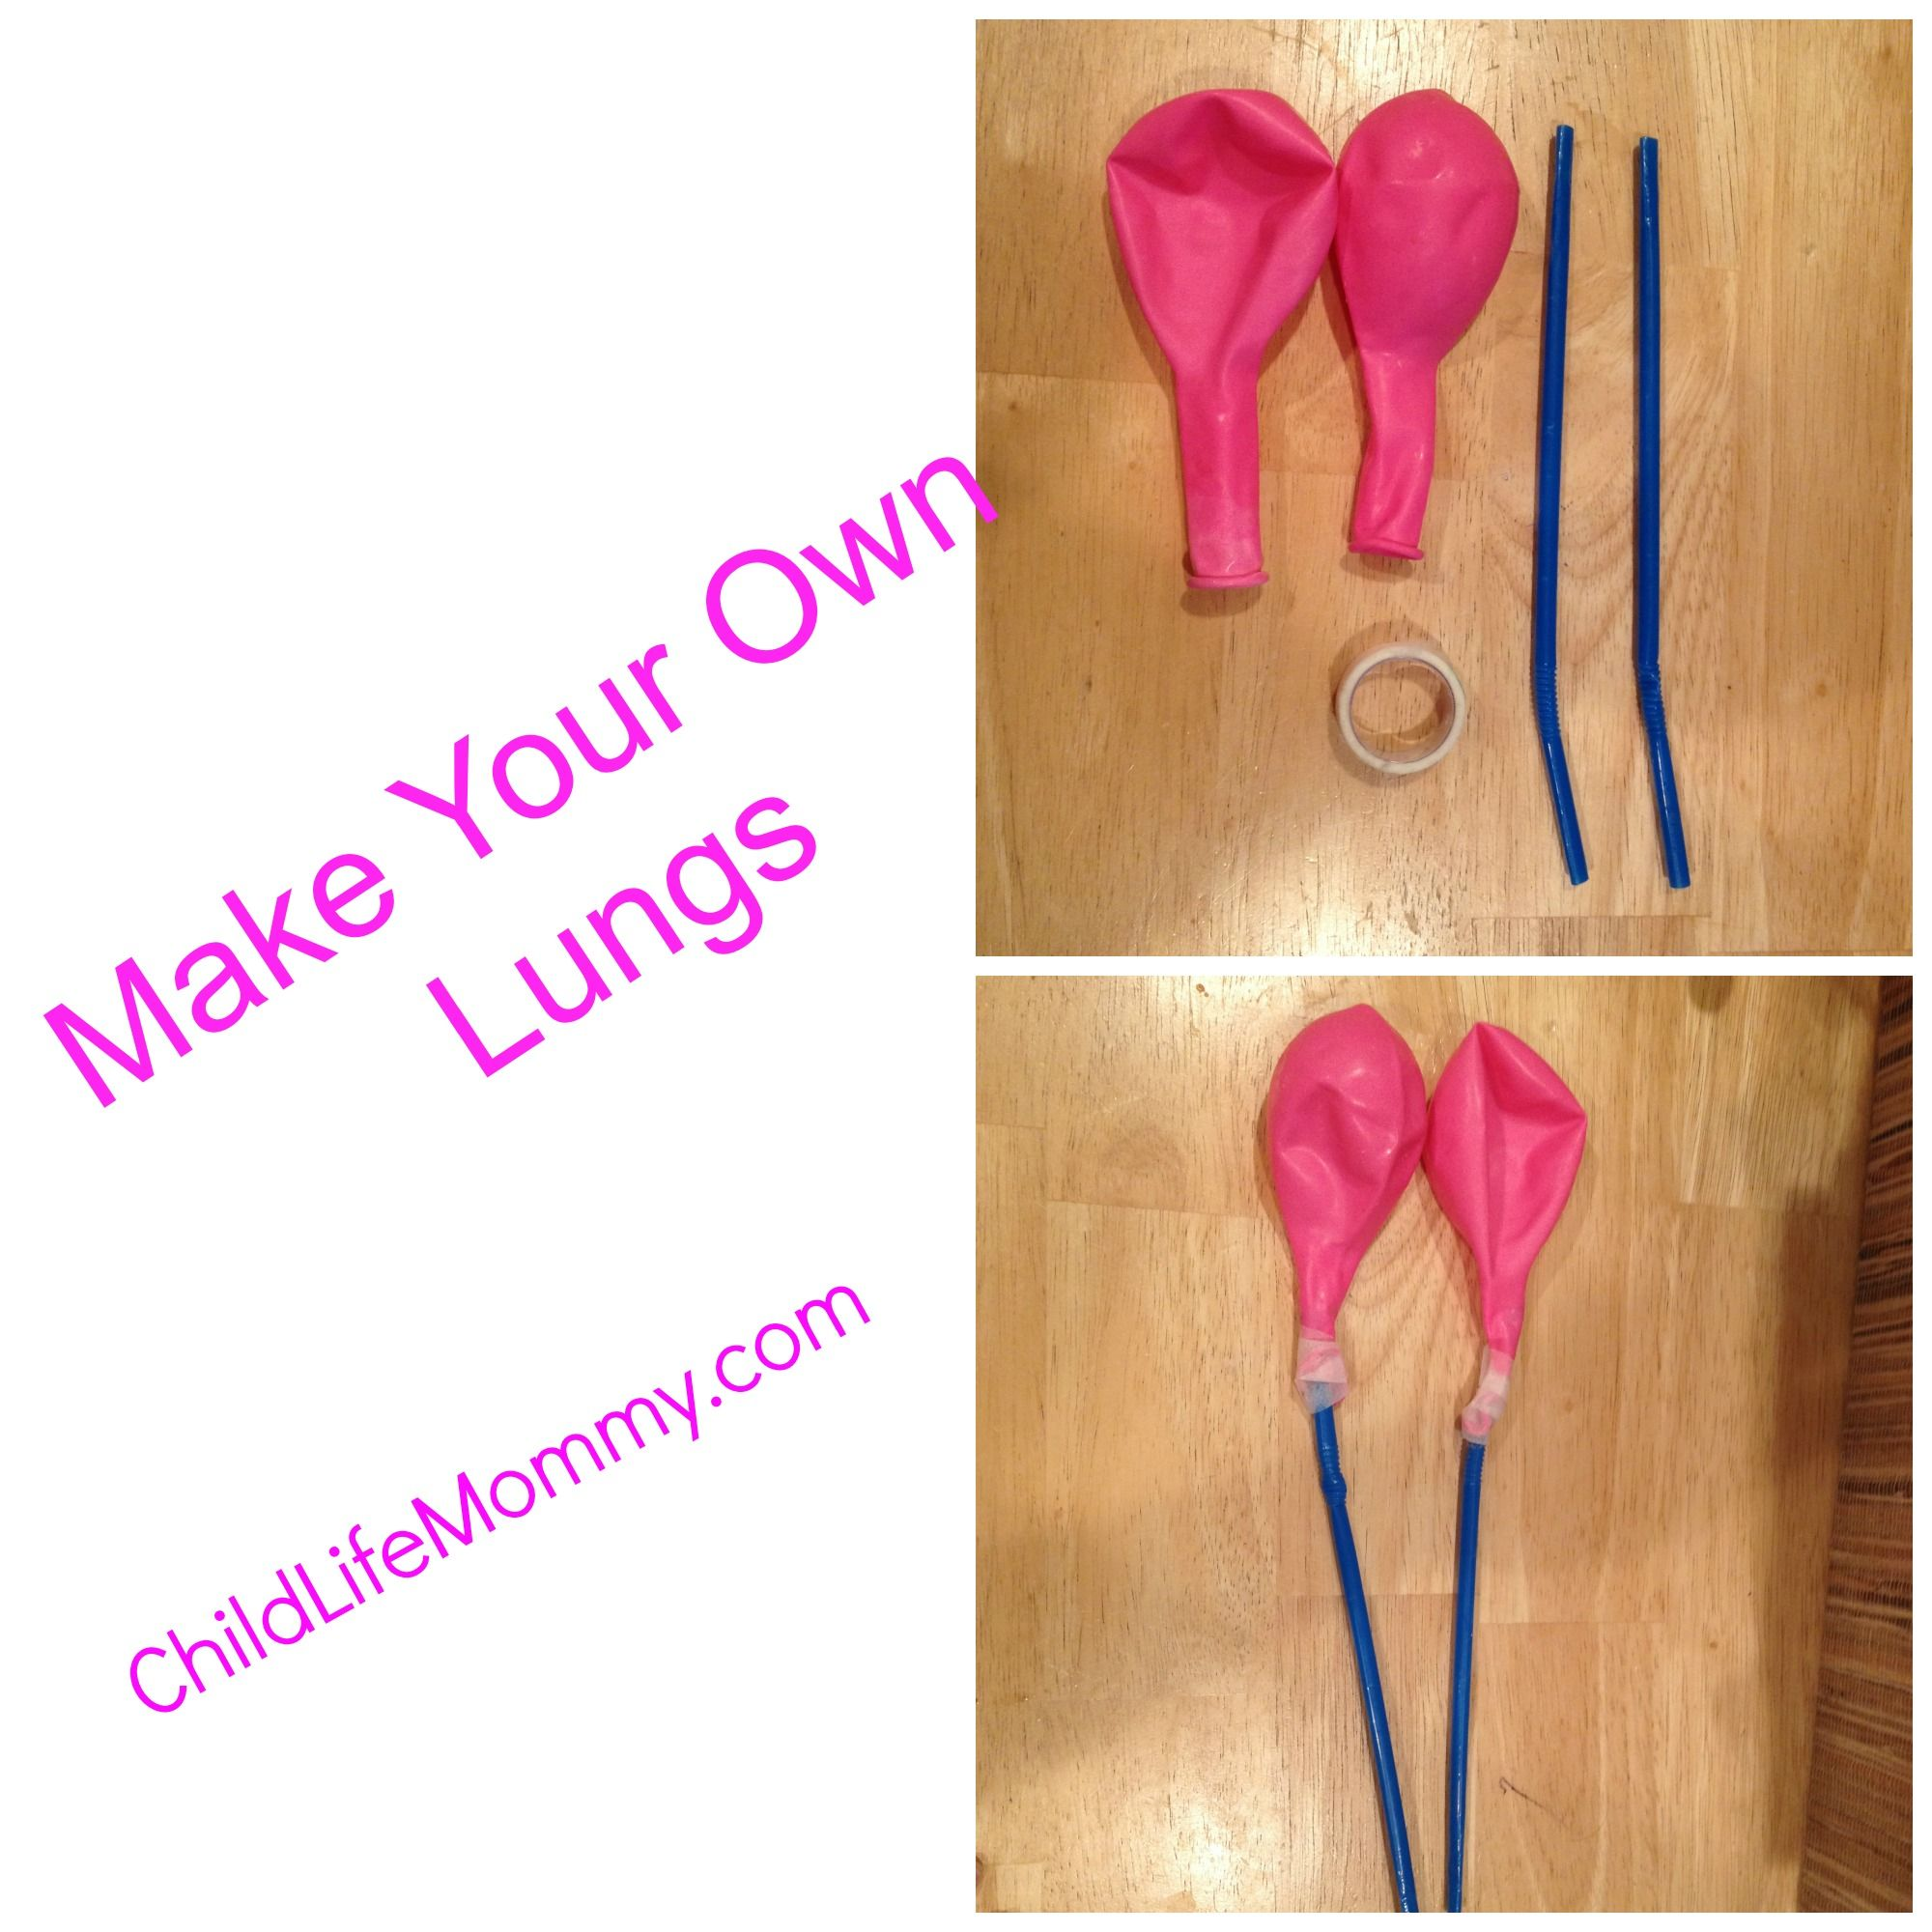 Diy Lungs To Make To Help Children With Asthma Cystic Fibrosis Or